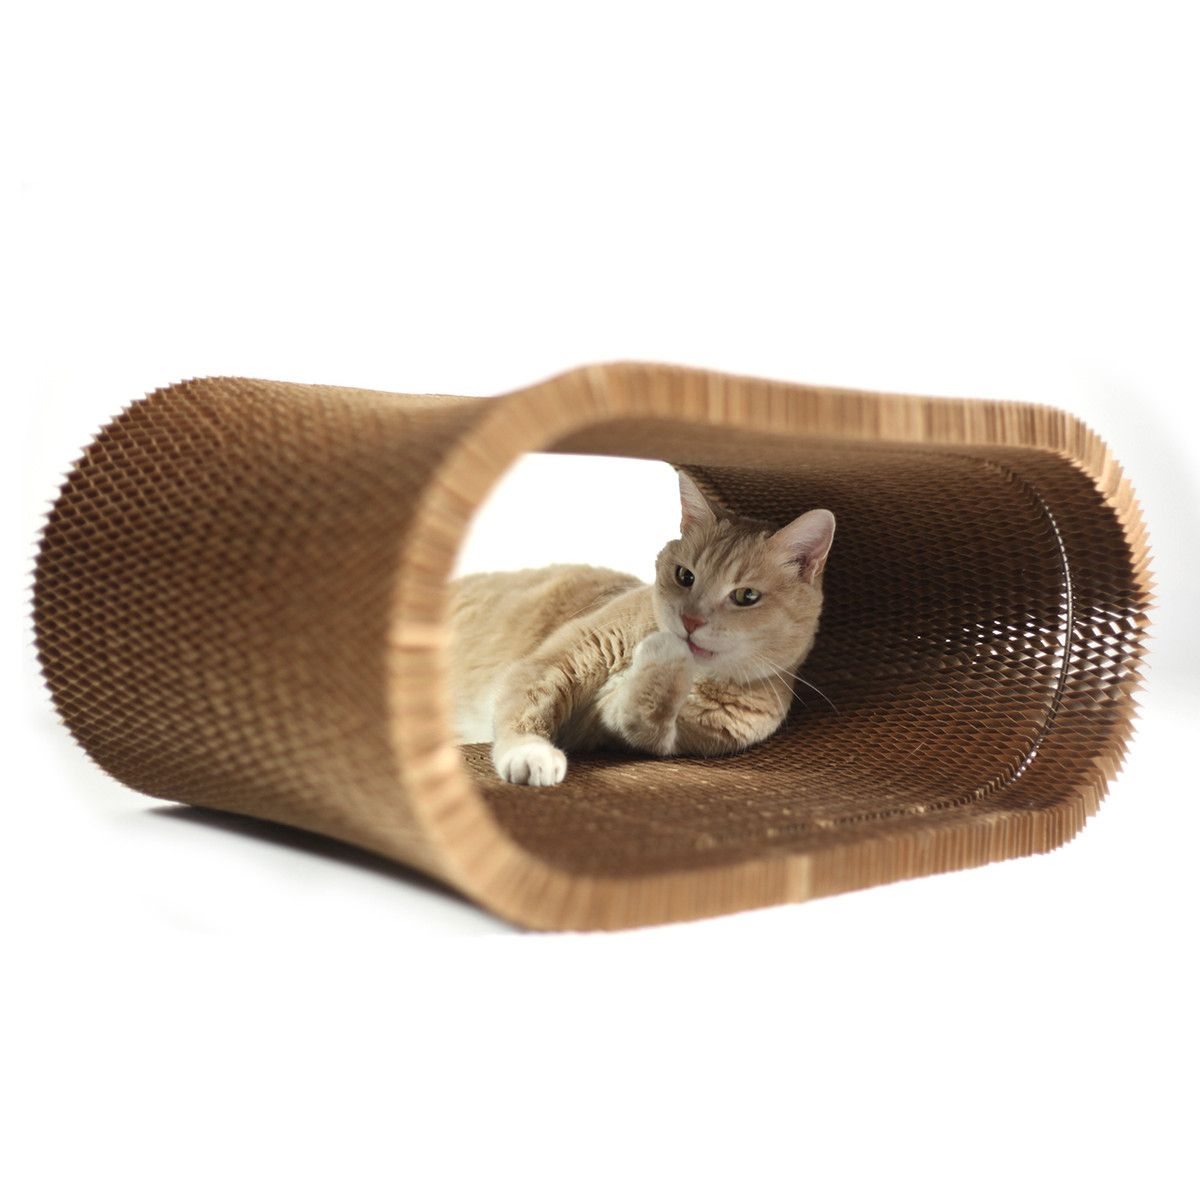 earth friendly furniture. KittyNest Is An Earth-friendly Hangout For Your Cat That Can Be Used As A Earth Friendly Furniture